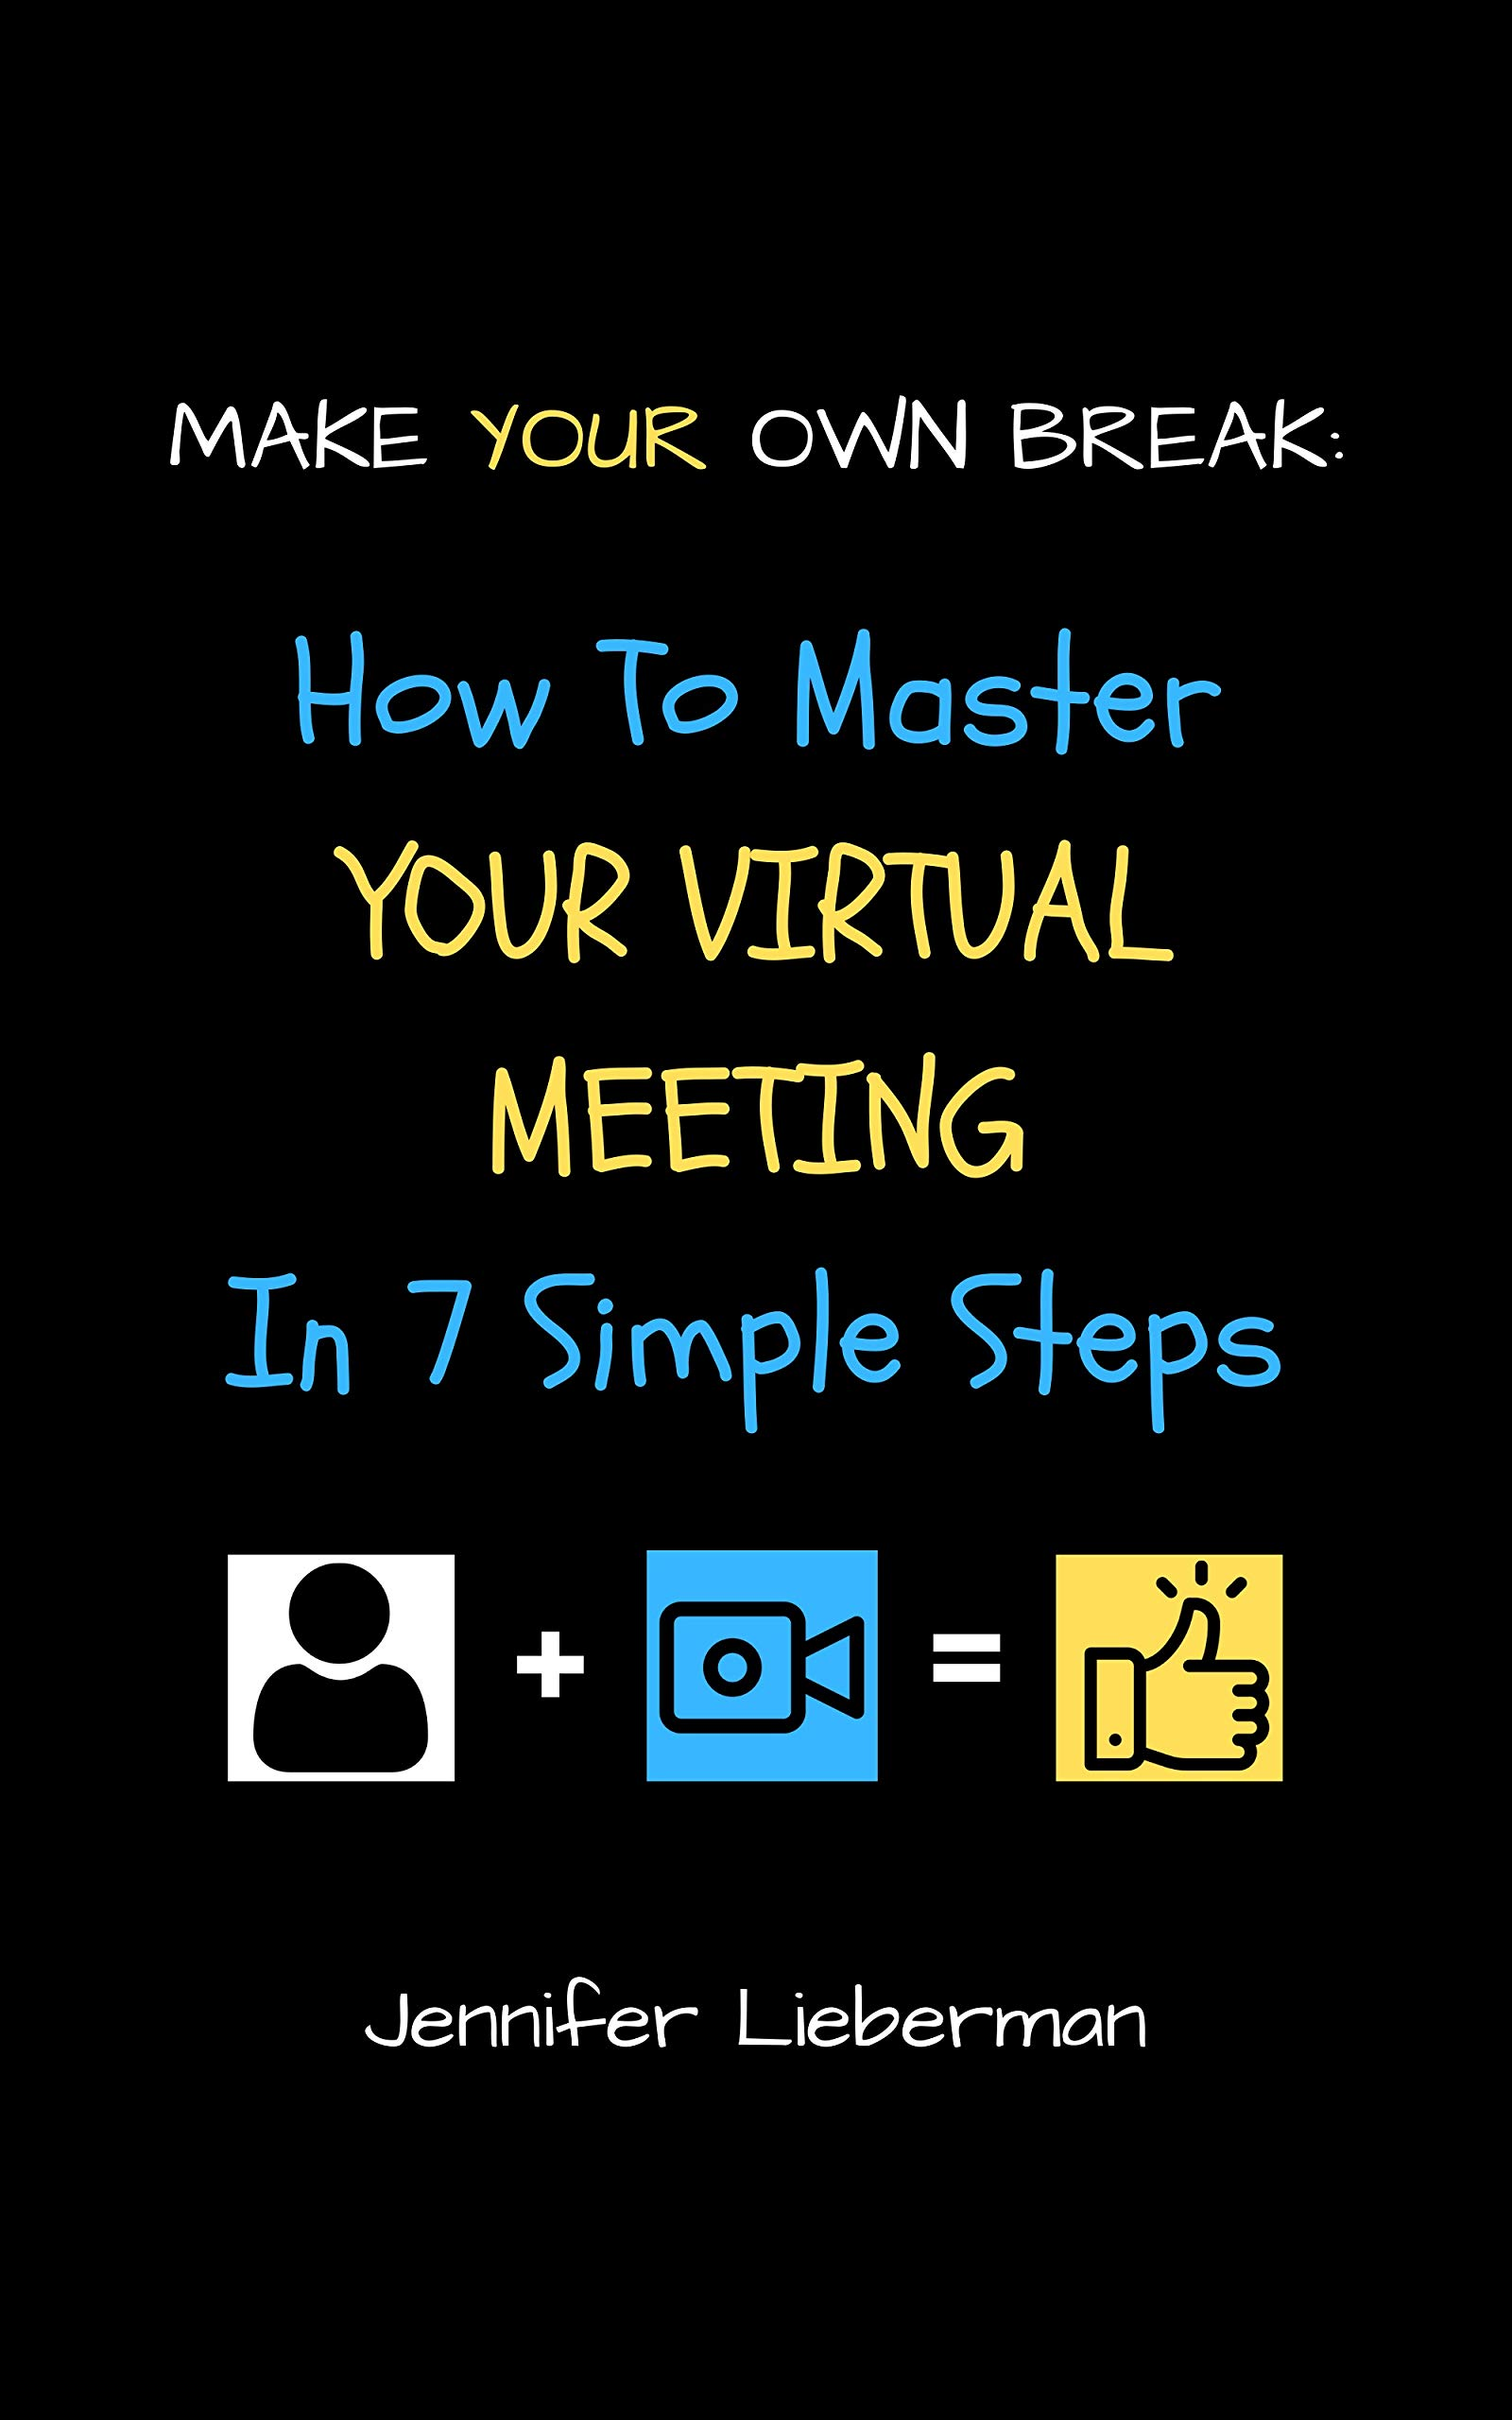 Make Your Own Break: How To Master Your Virtual Meeting in Seven Simple Steps